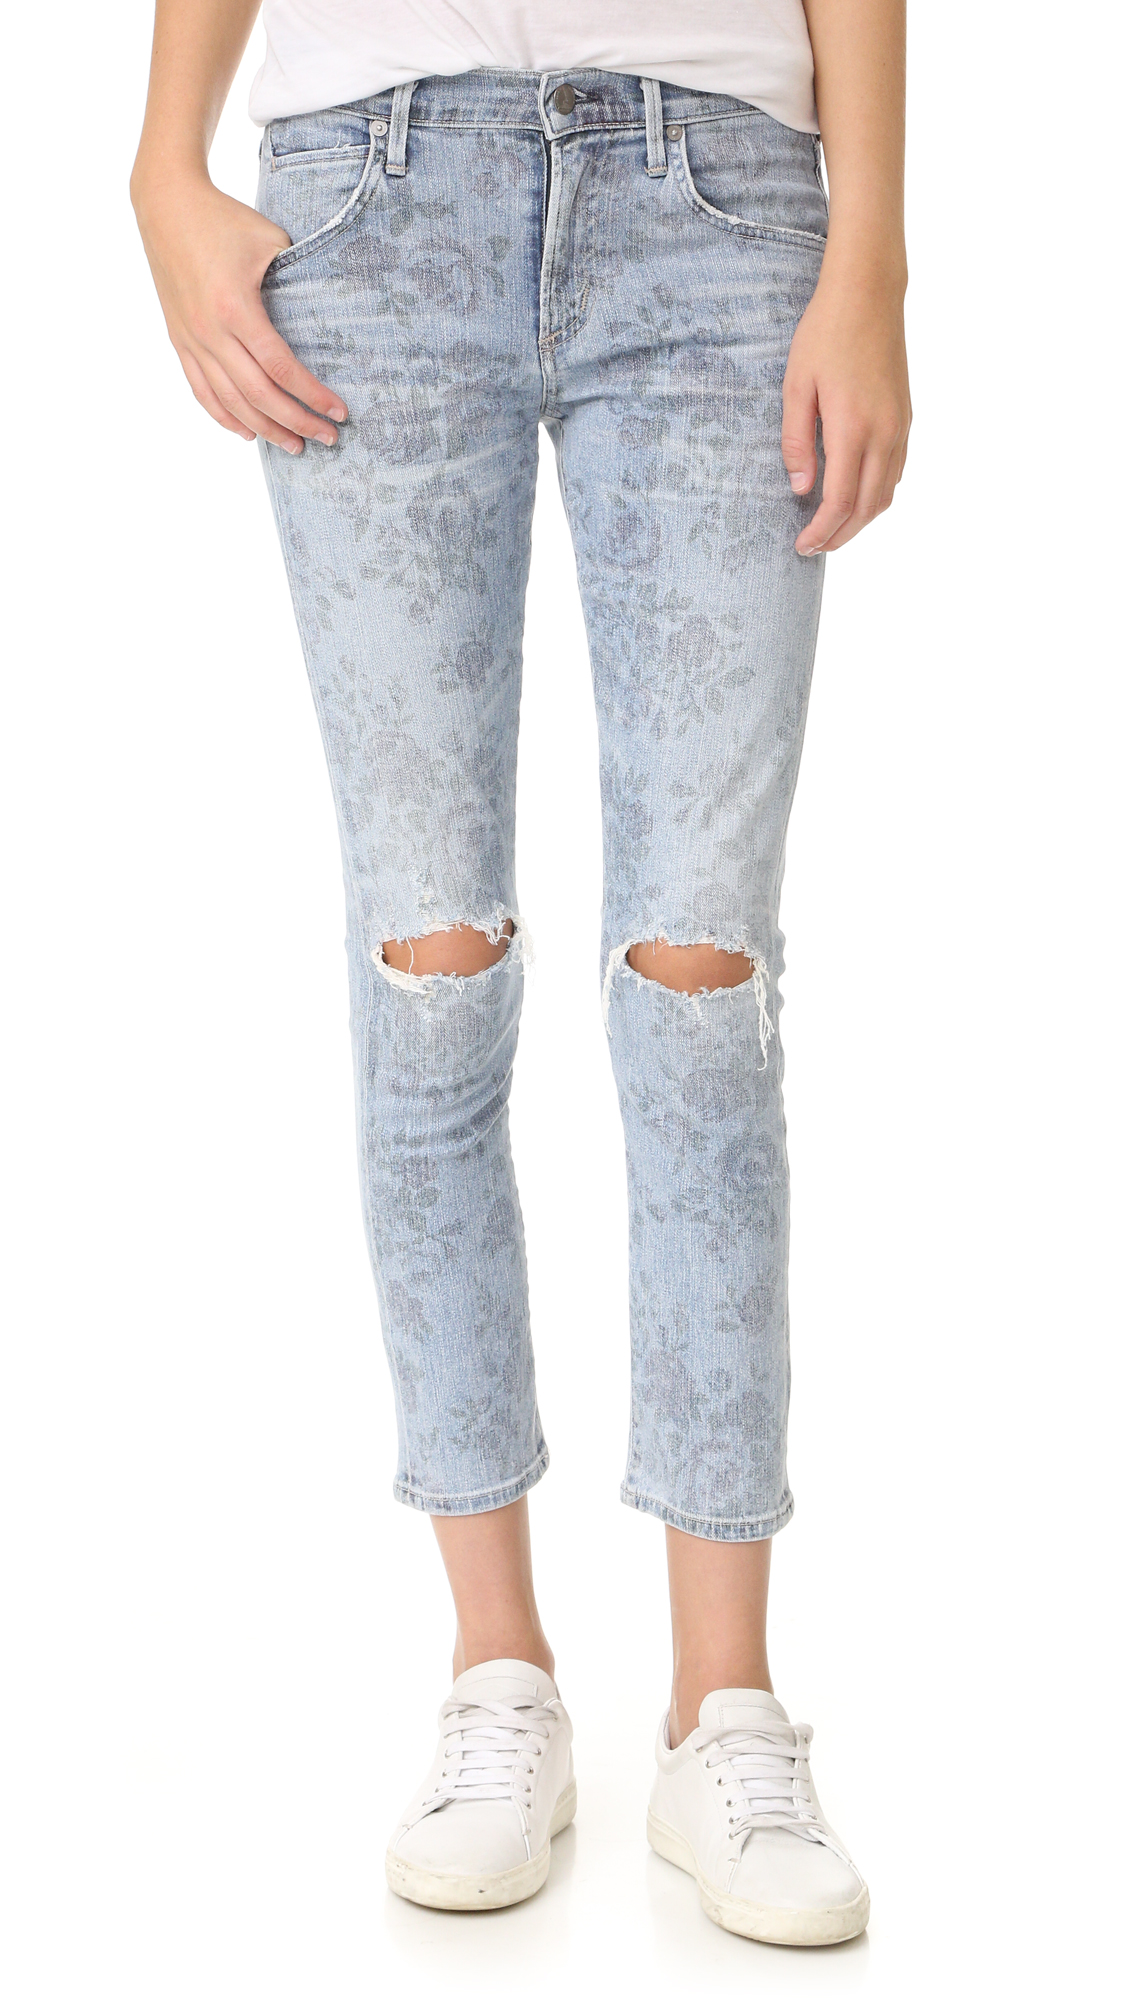 Citizens Of Humanity The Principle Girlfriend Jeans - Acid Rose at Shopbop